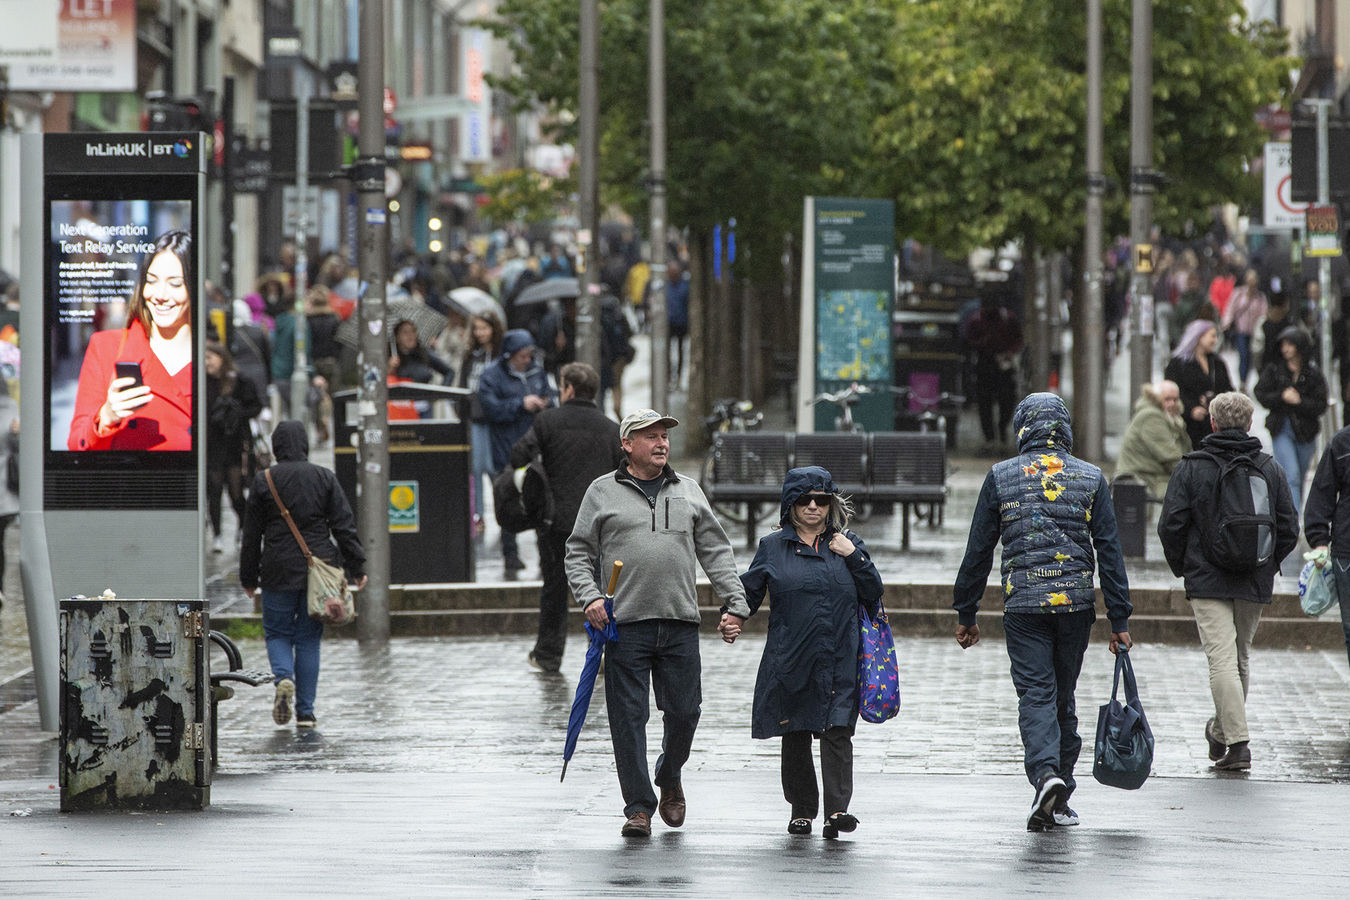 Sauchiehall Street is the number one retail district in the UK outside of London's West End